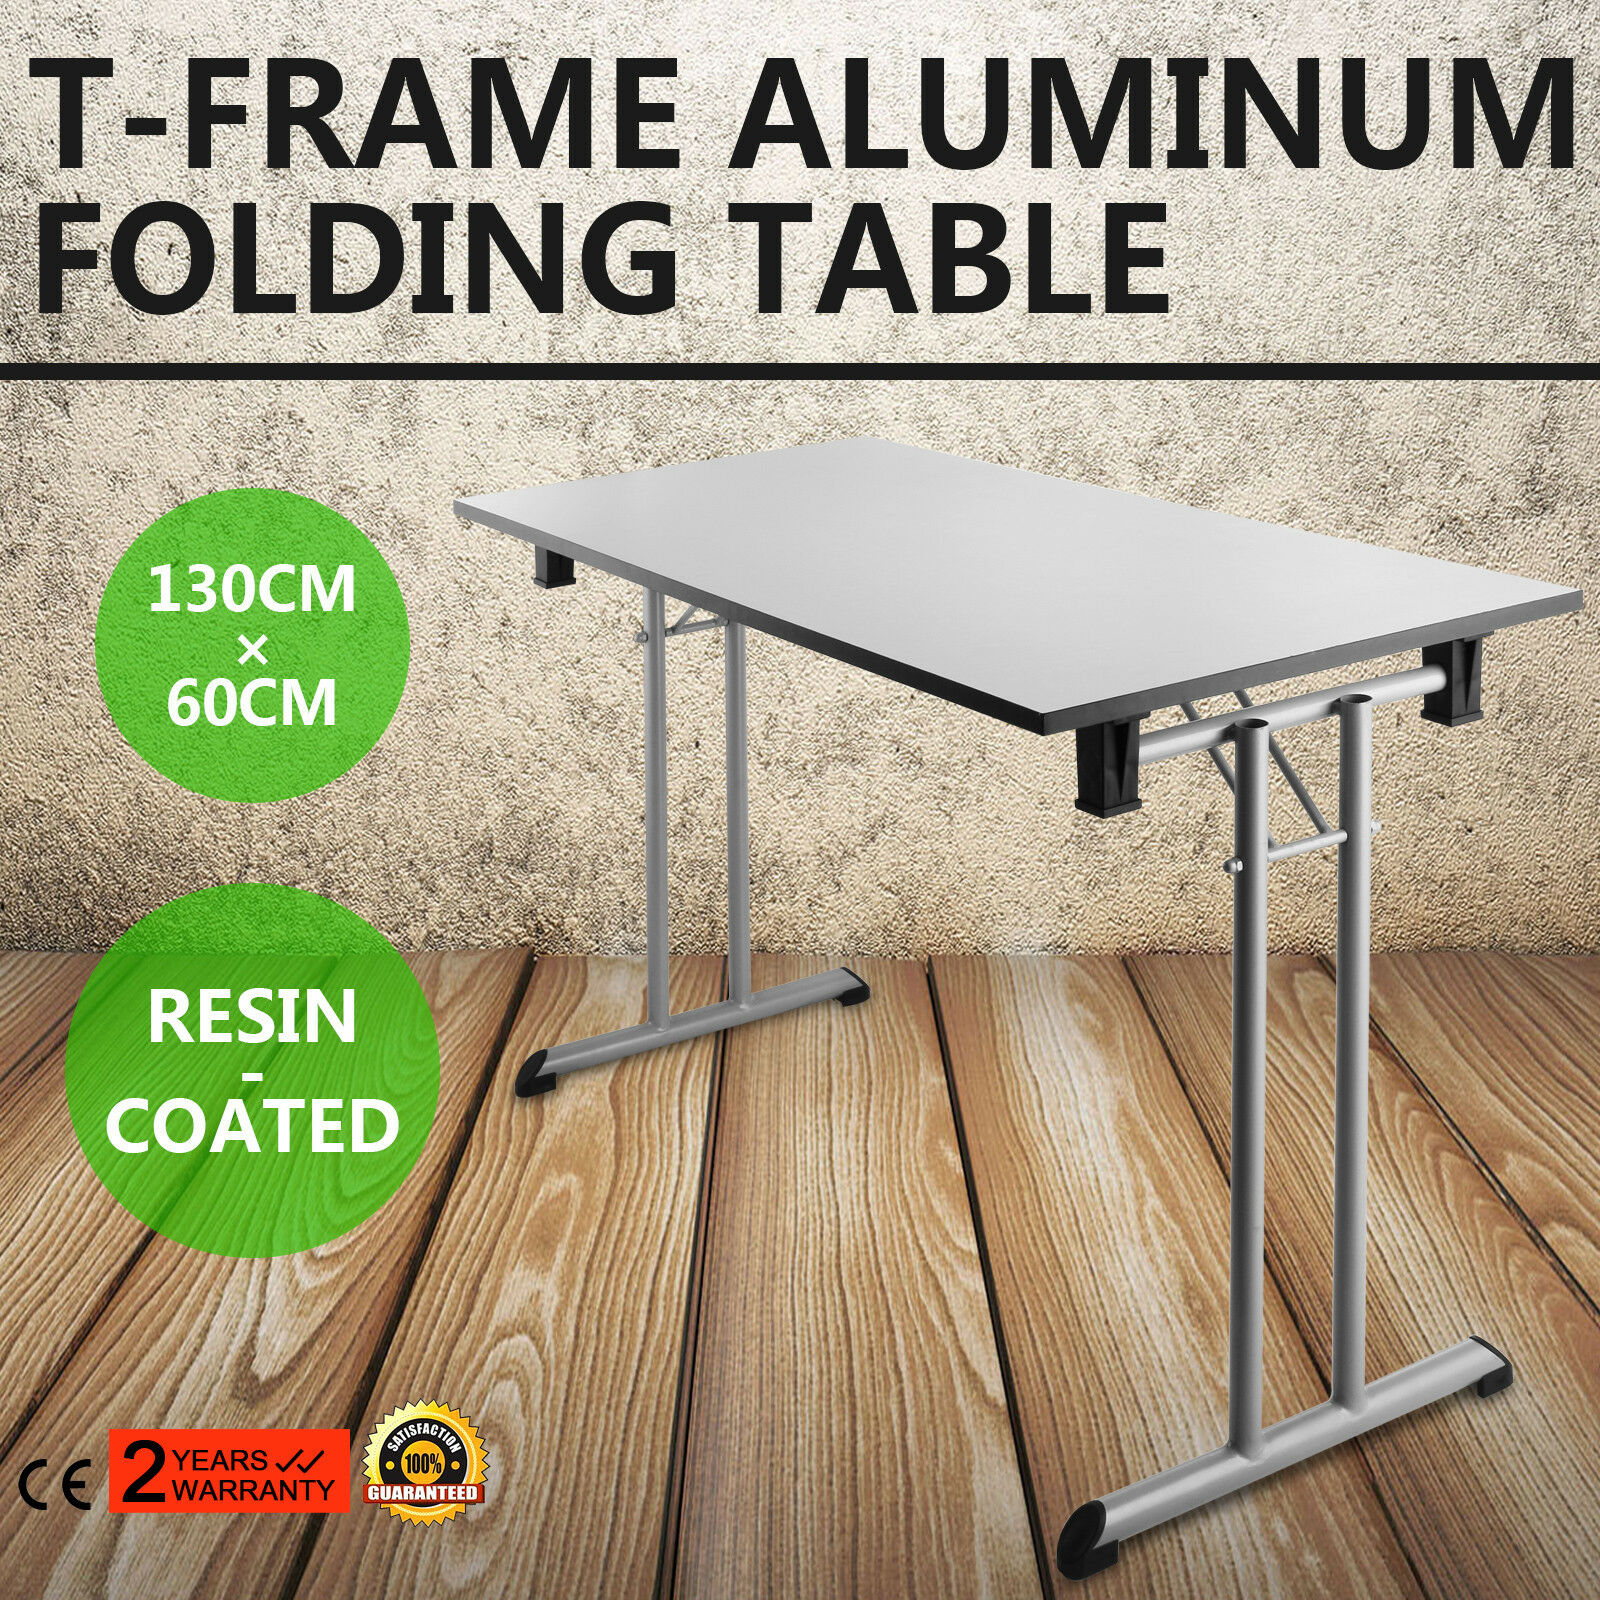 25''x52'' Folding Table T-frame aluminum Light-weight High-quality Plastic